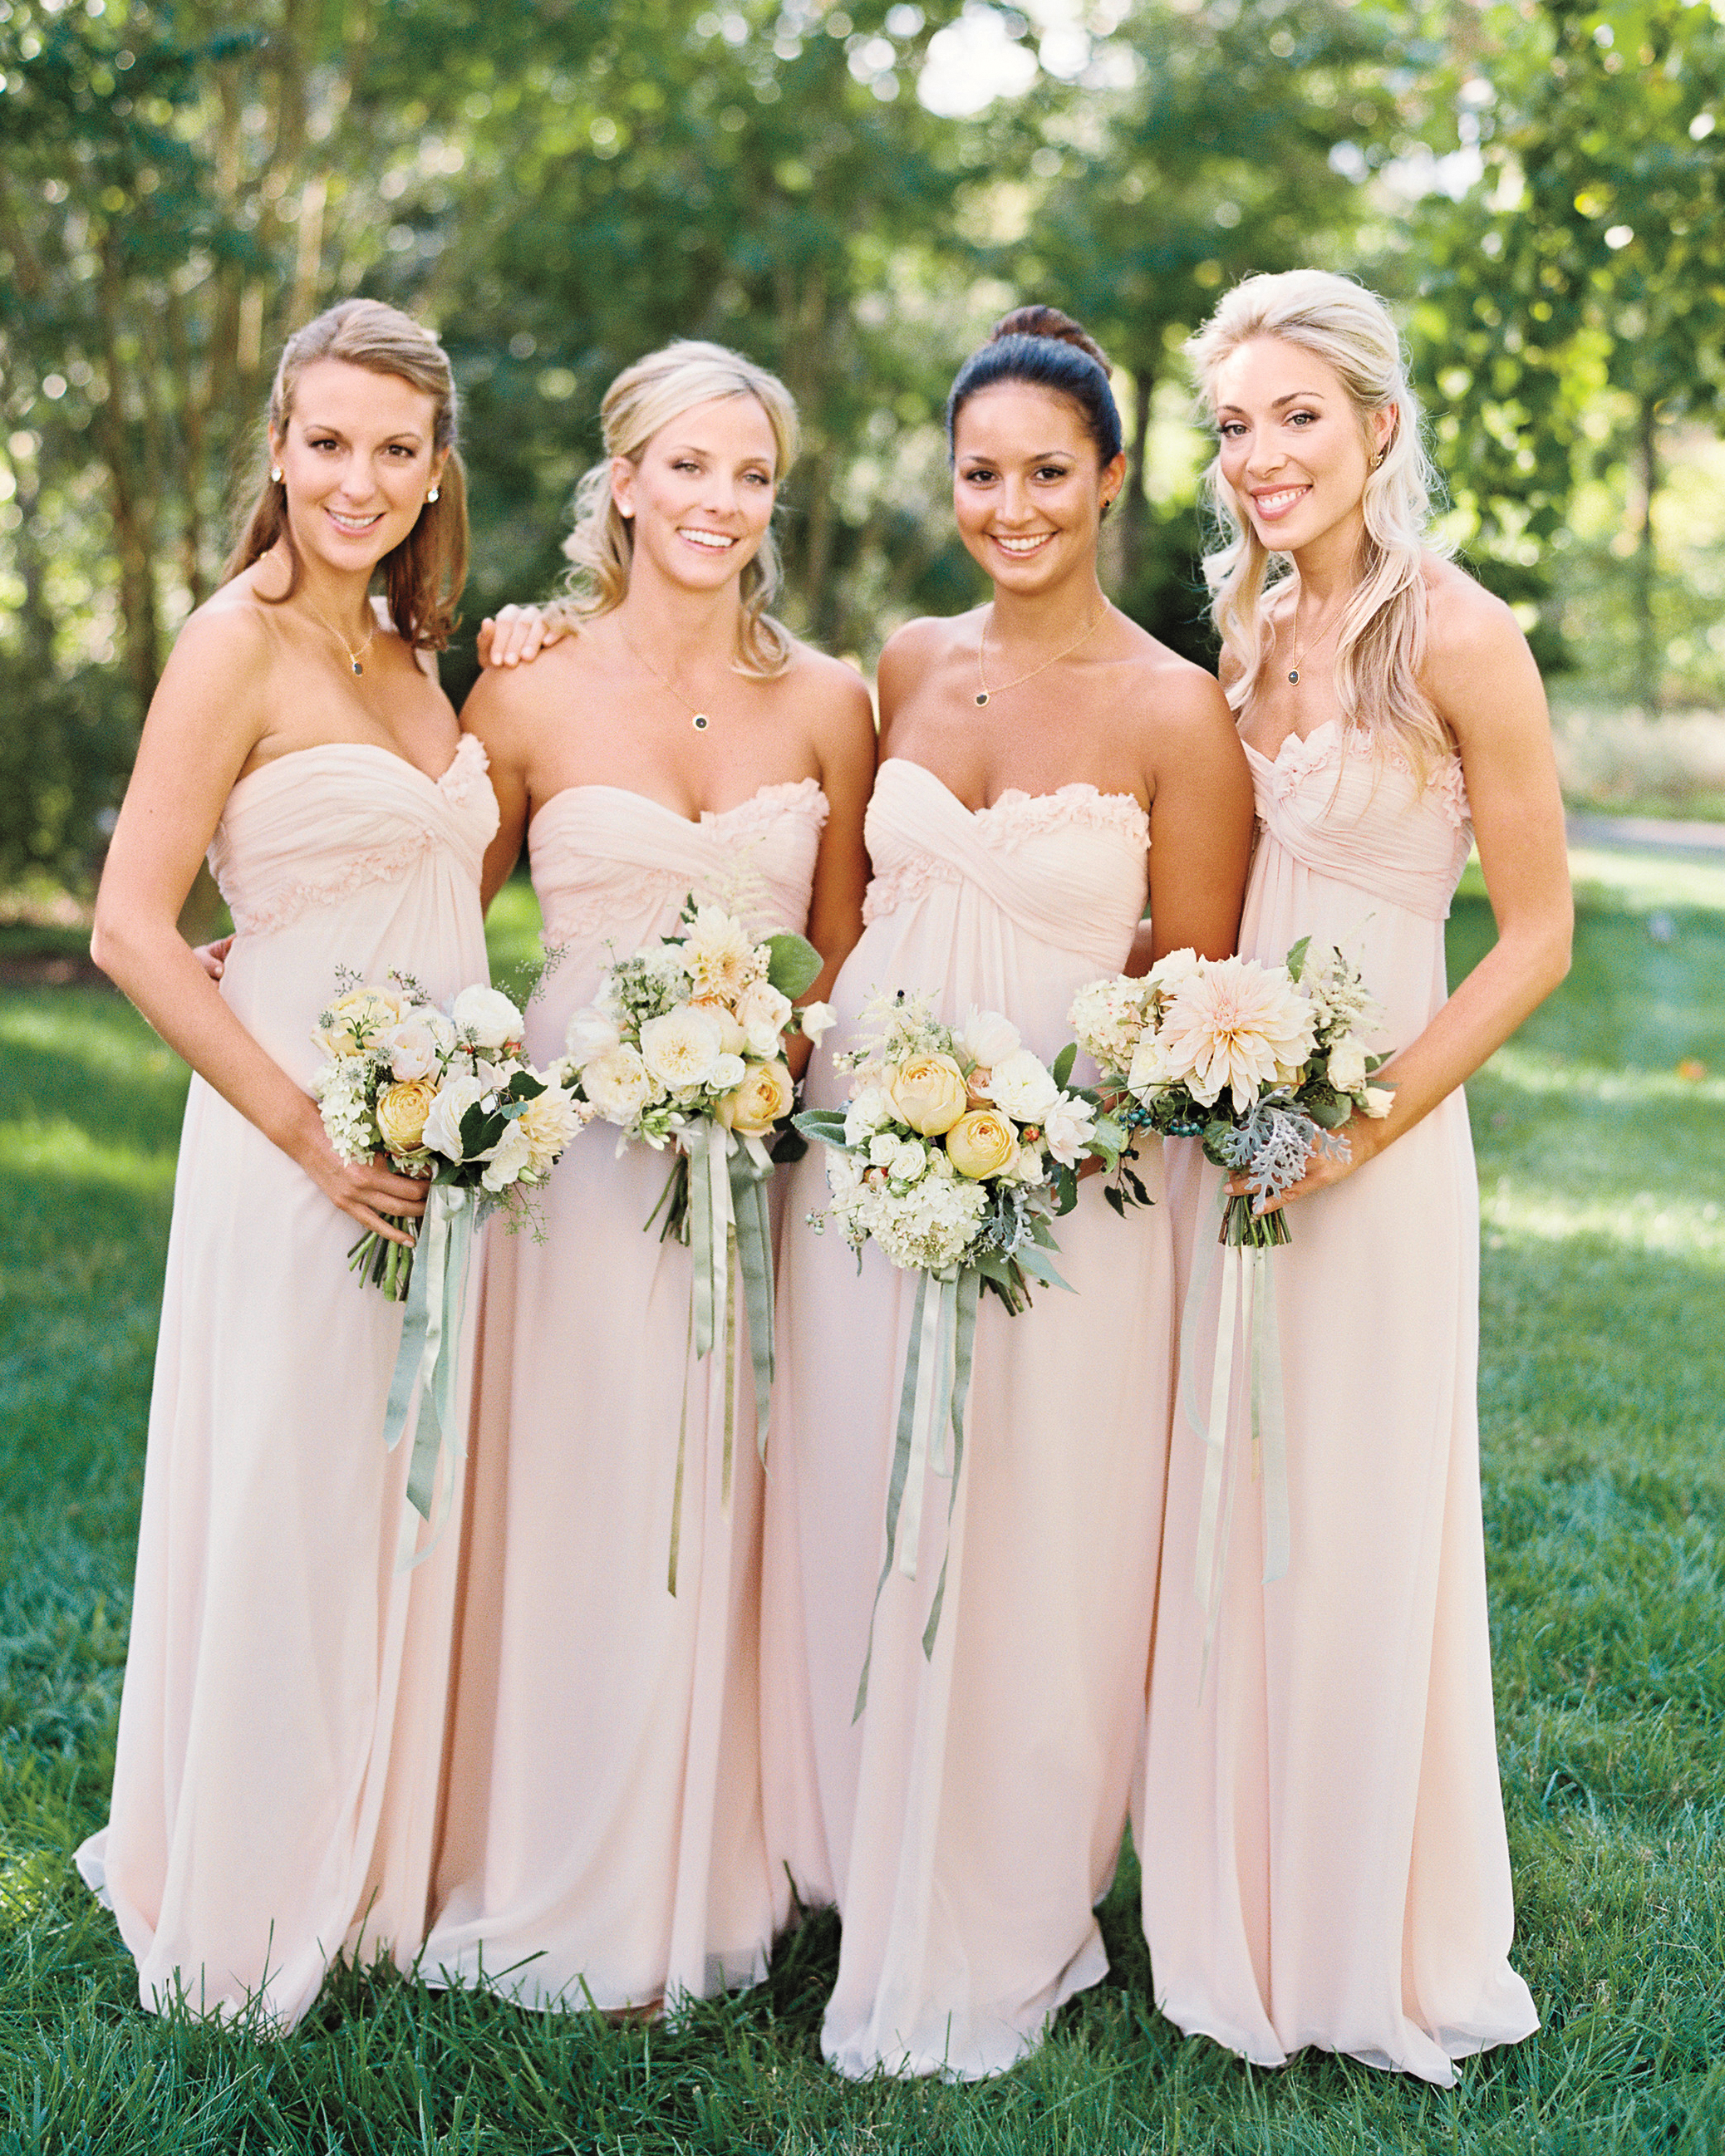 … And Dressed Their Bridesmaids in Blush